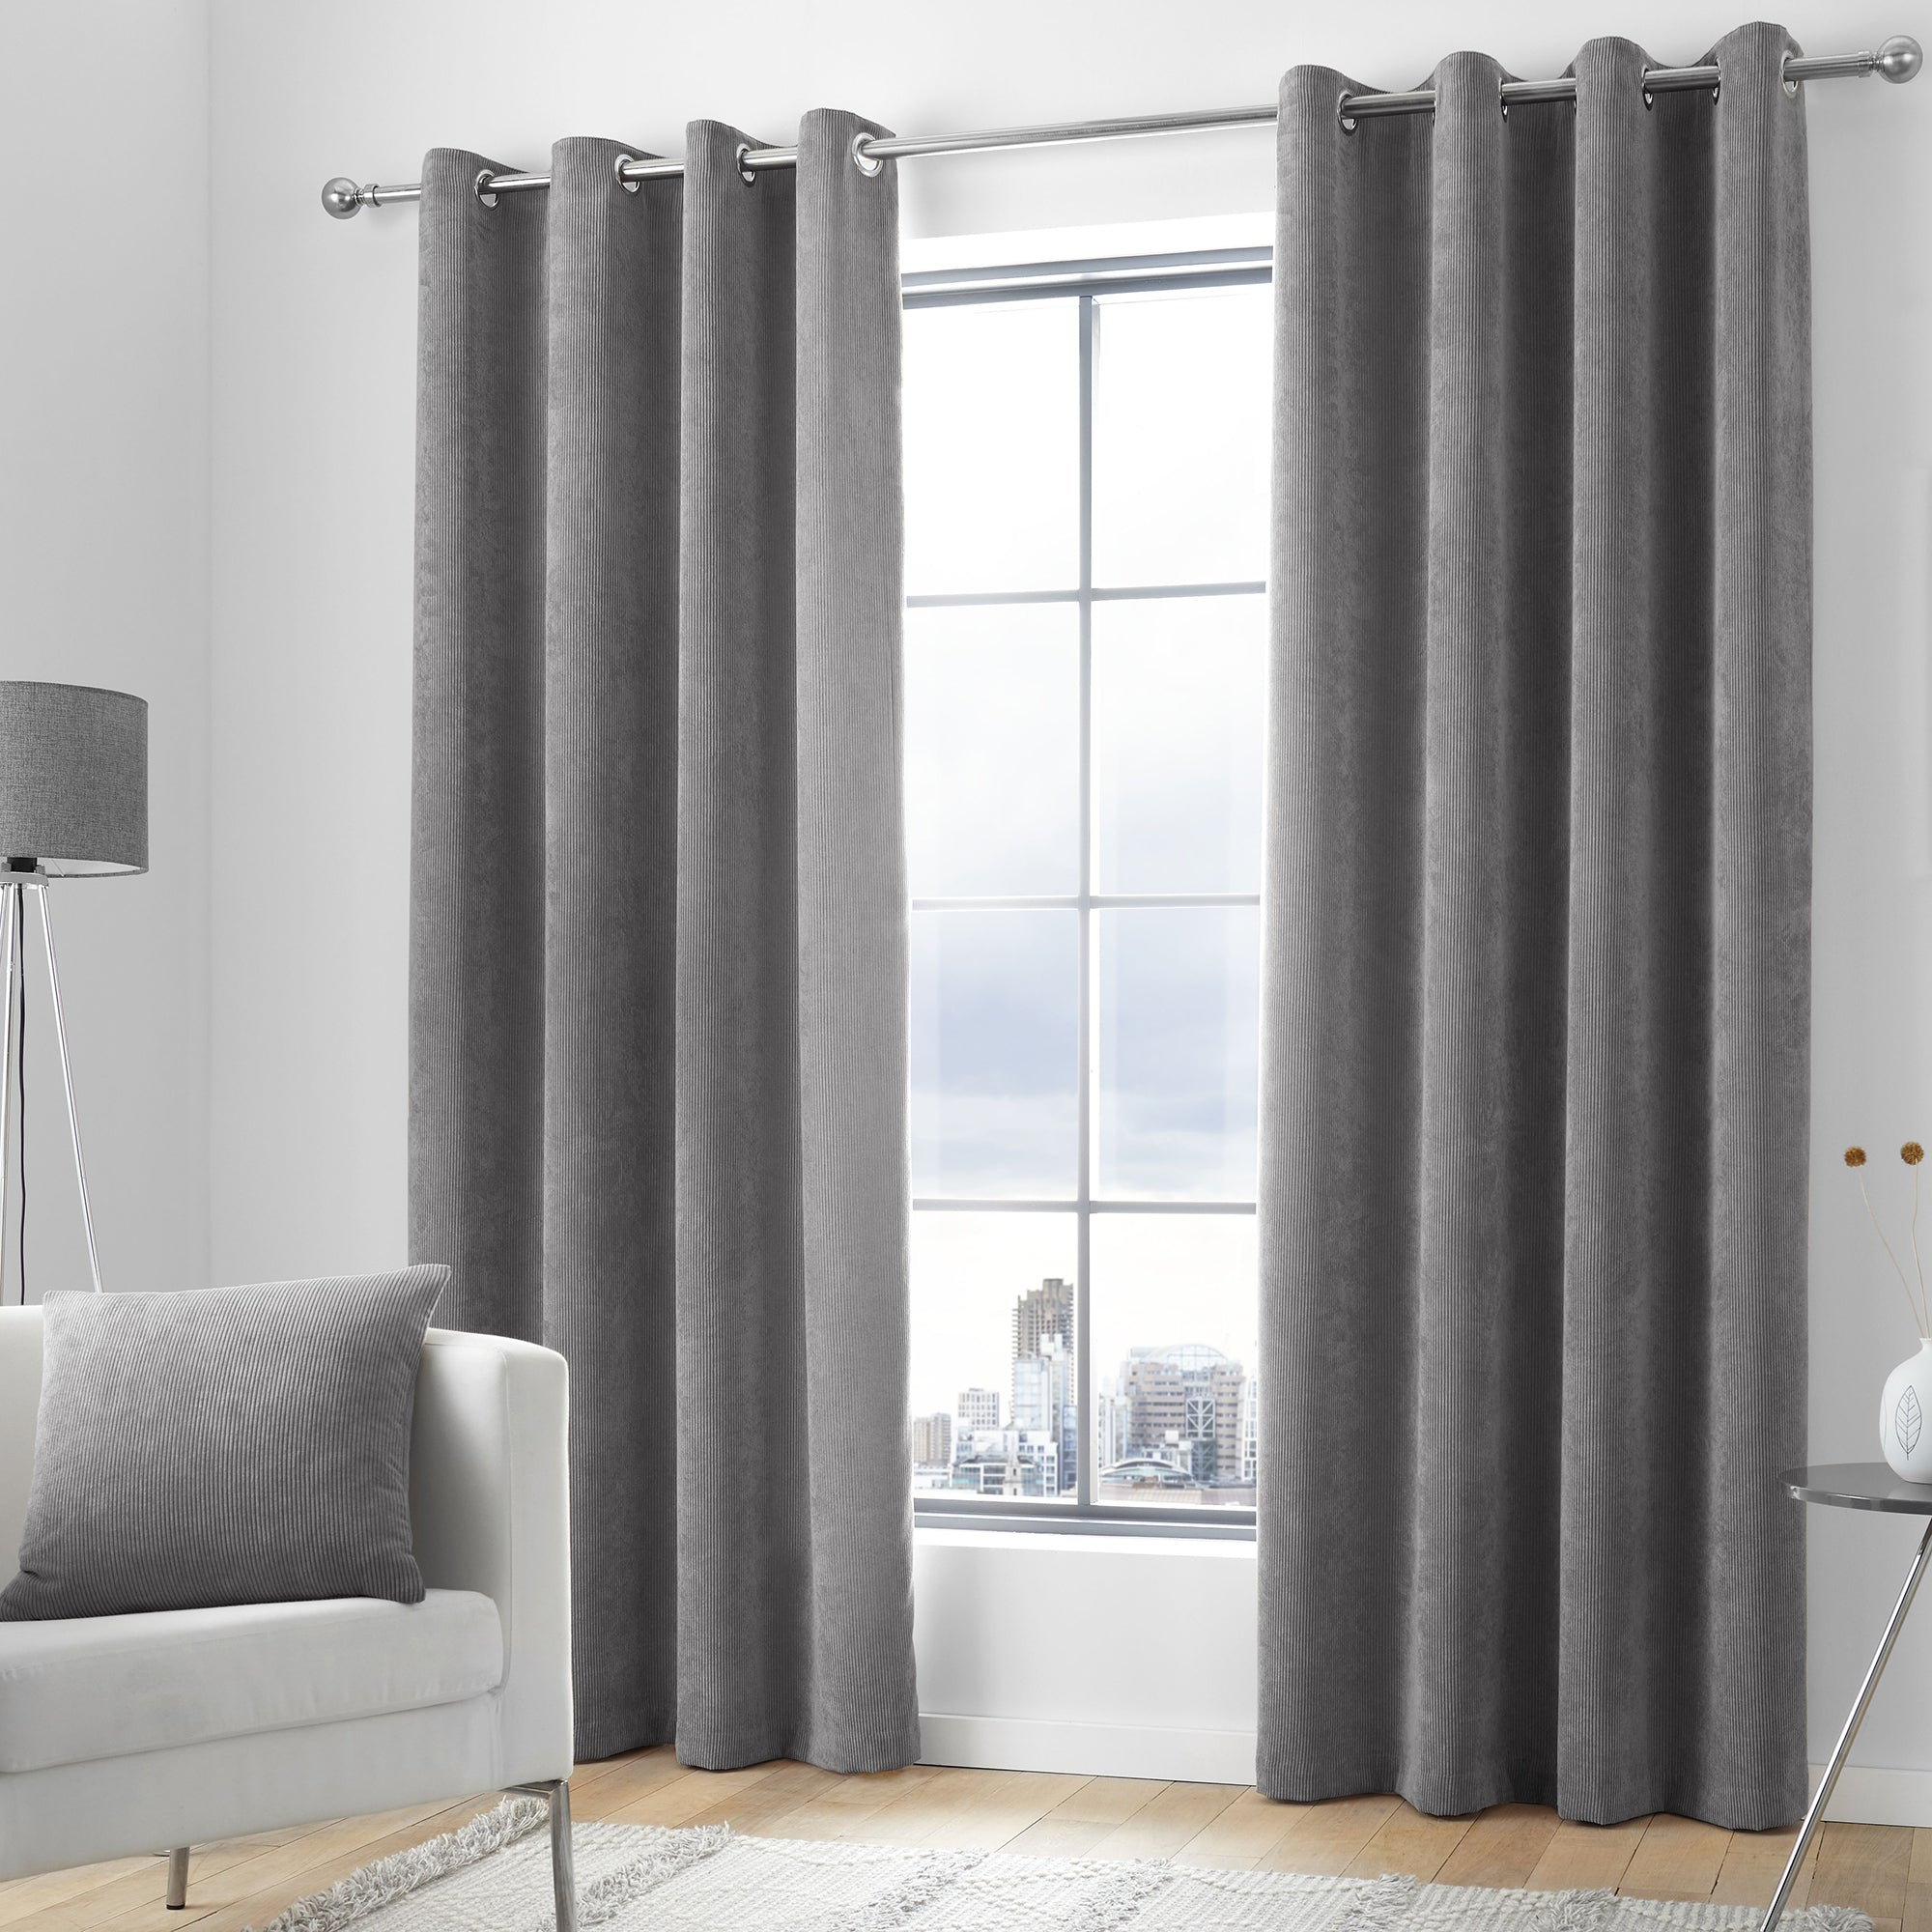 Kilbride Cord - Chenille Eyelet Curtains in Charcoal- By Appletree Loft